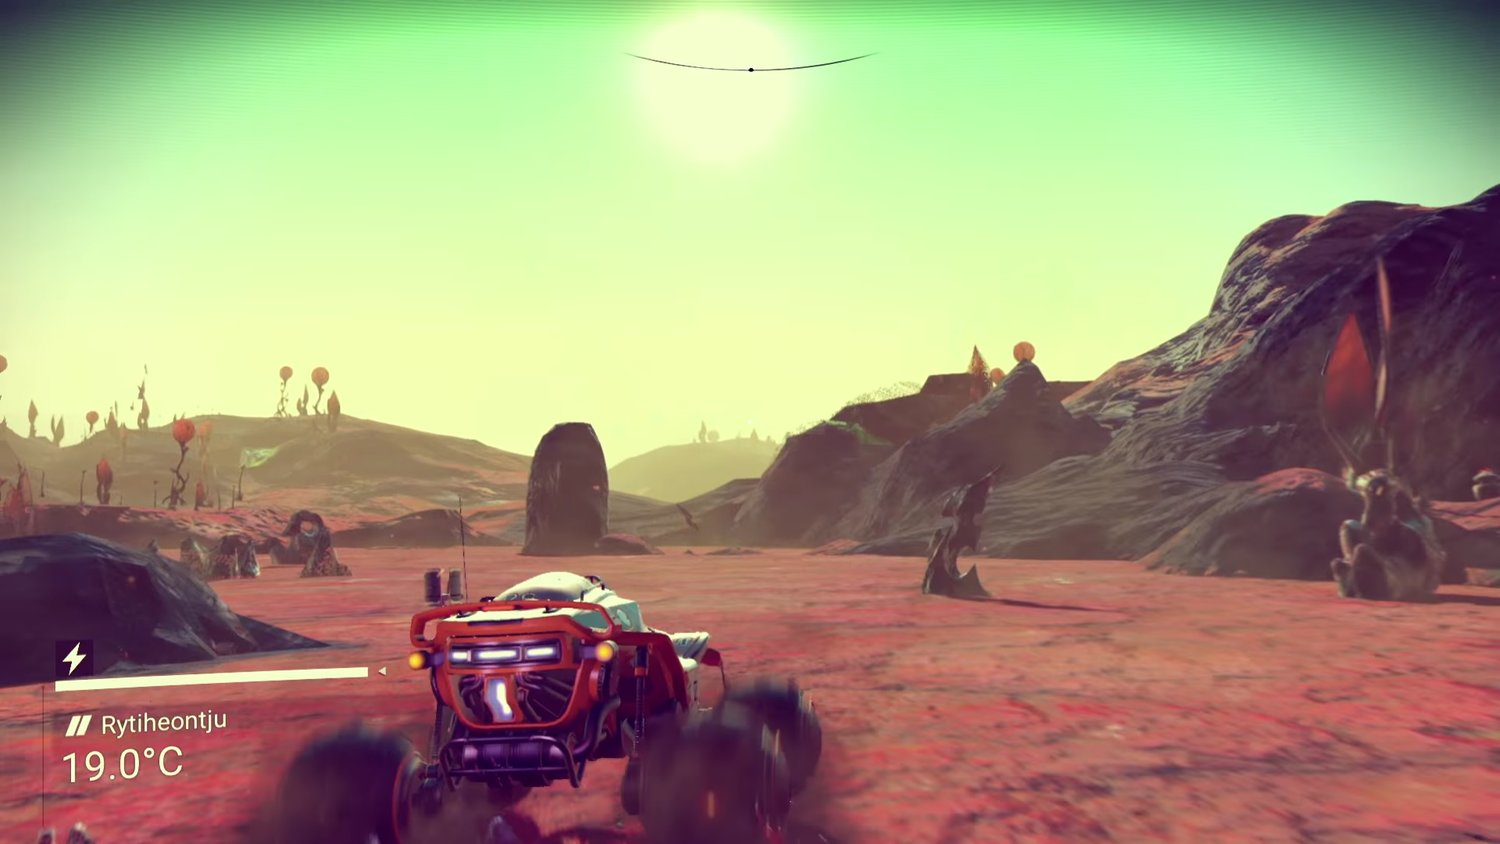 NO MAN'S SKY Adds Vehicles, and They Actually Look Kind of Fun